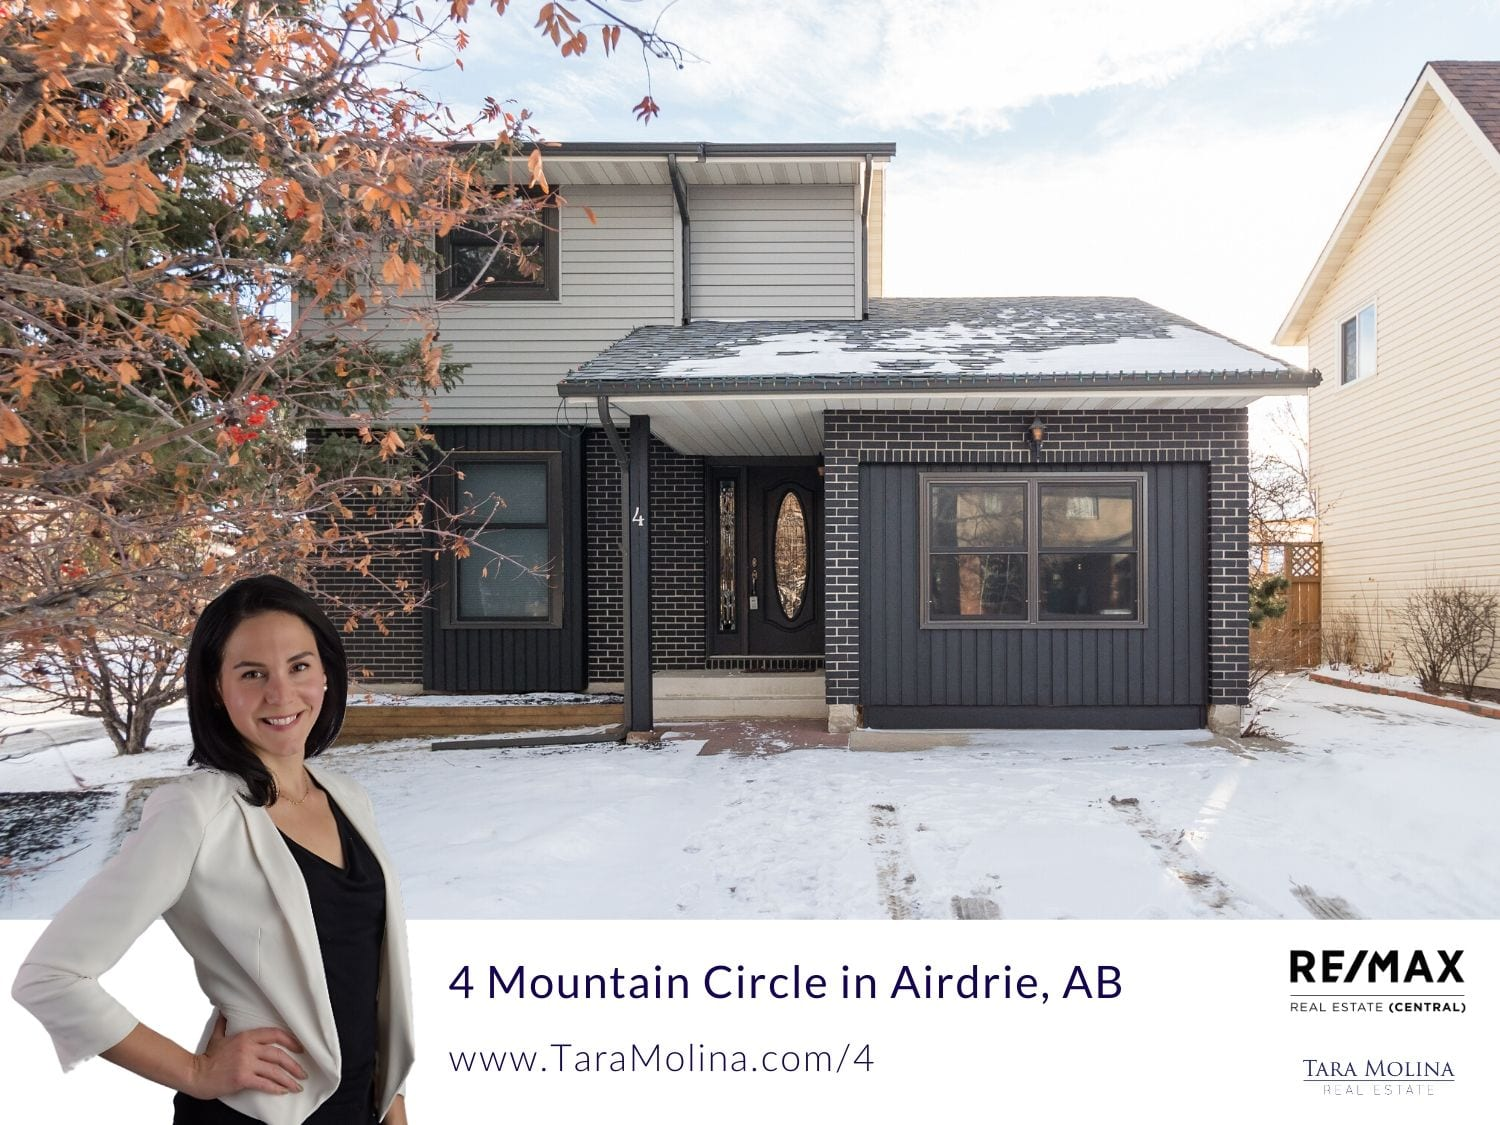 4 Mountain Circle in Airdrie, AB